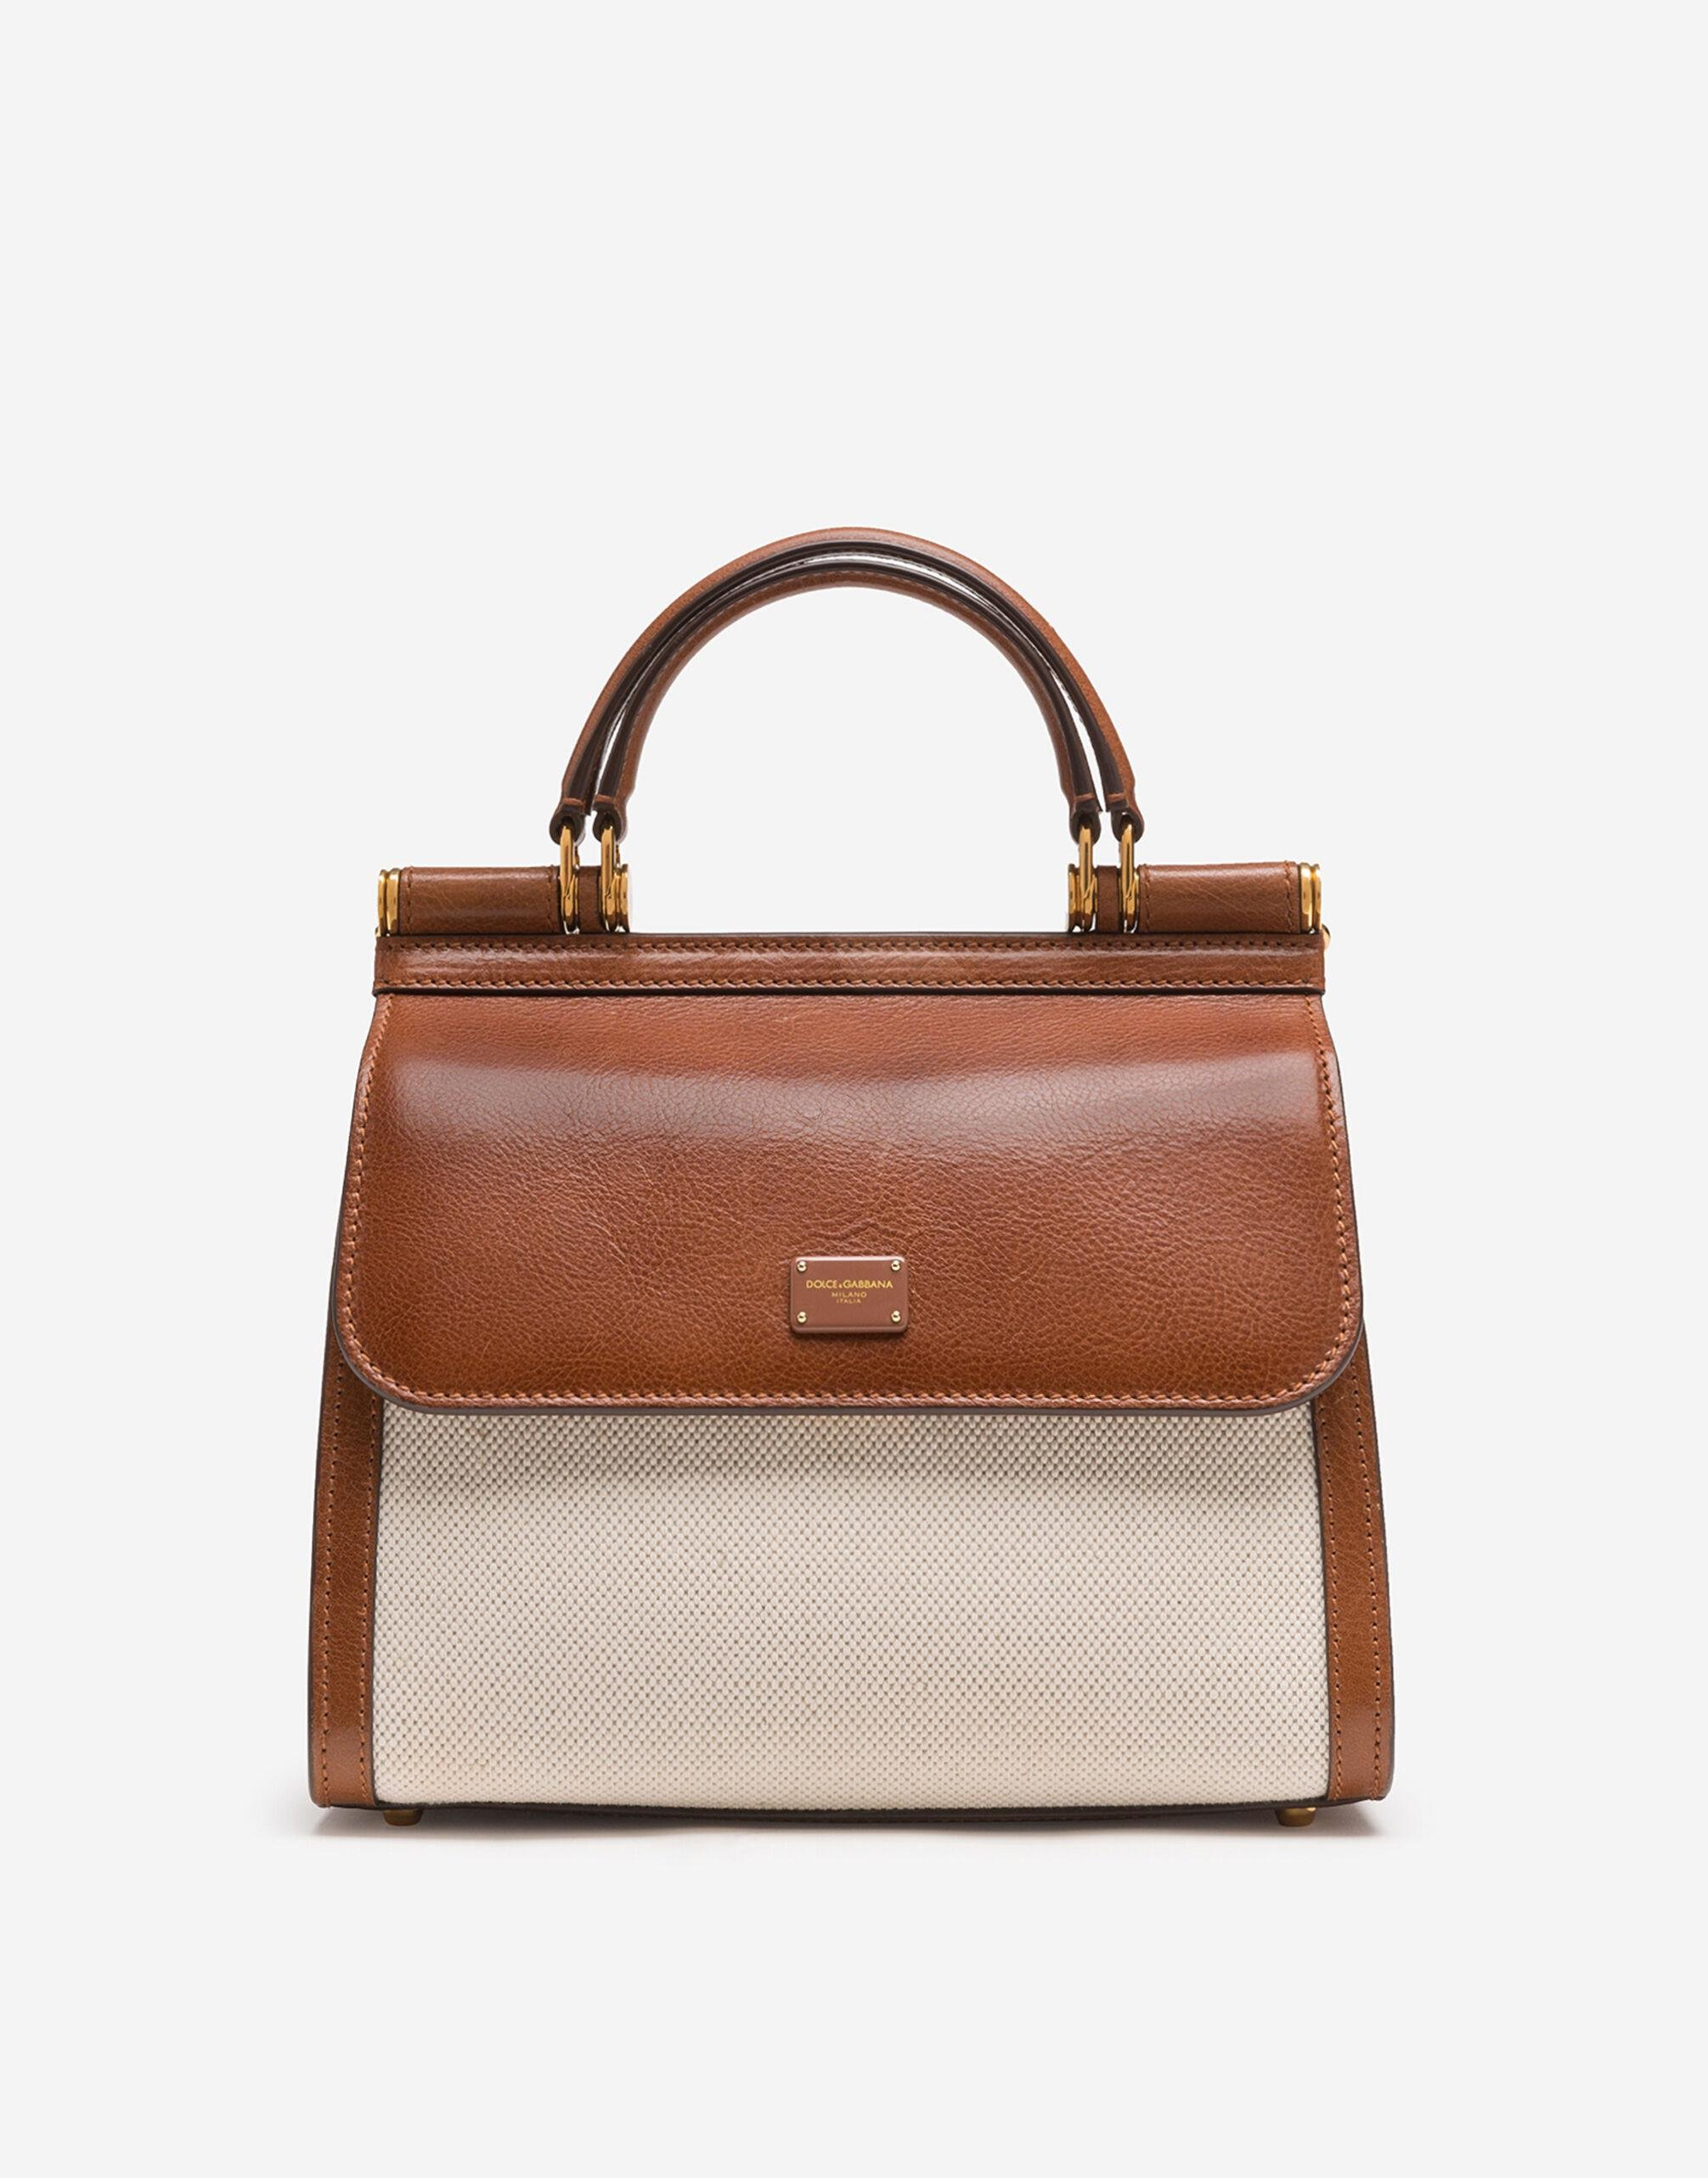 Medium Sicily 58 bag in canvas and cowhide